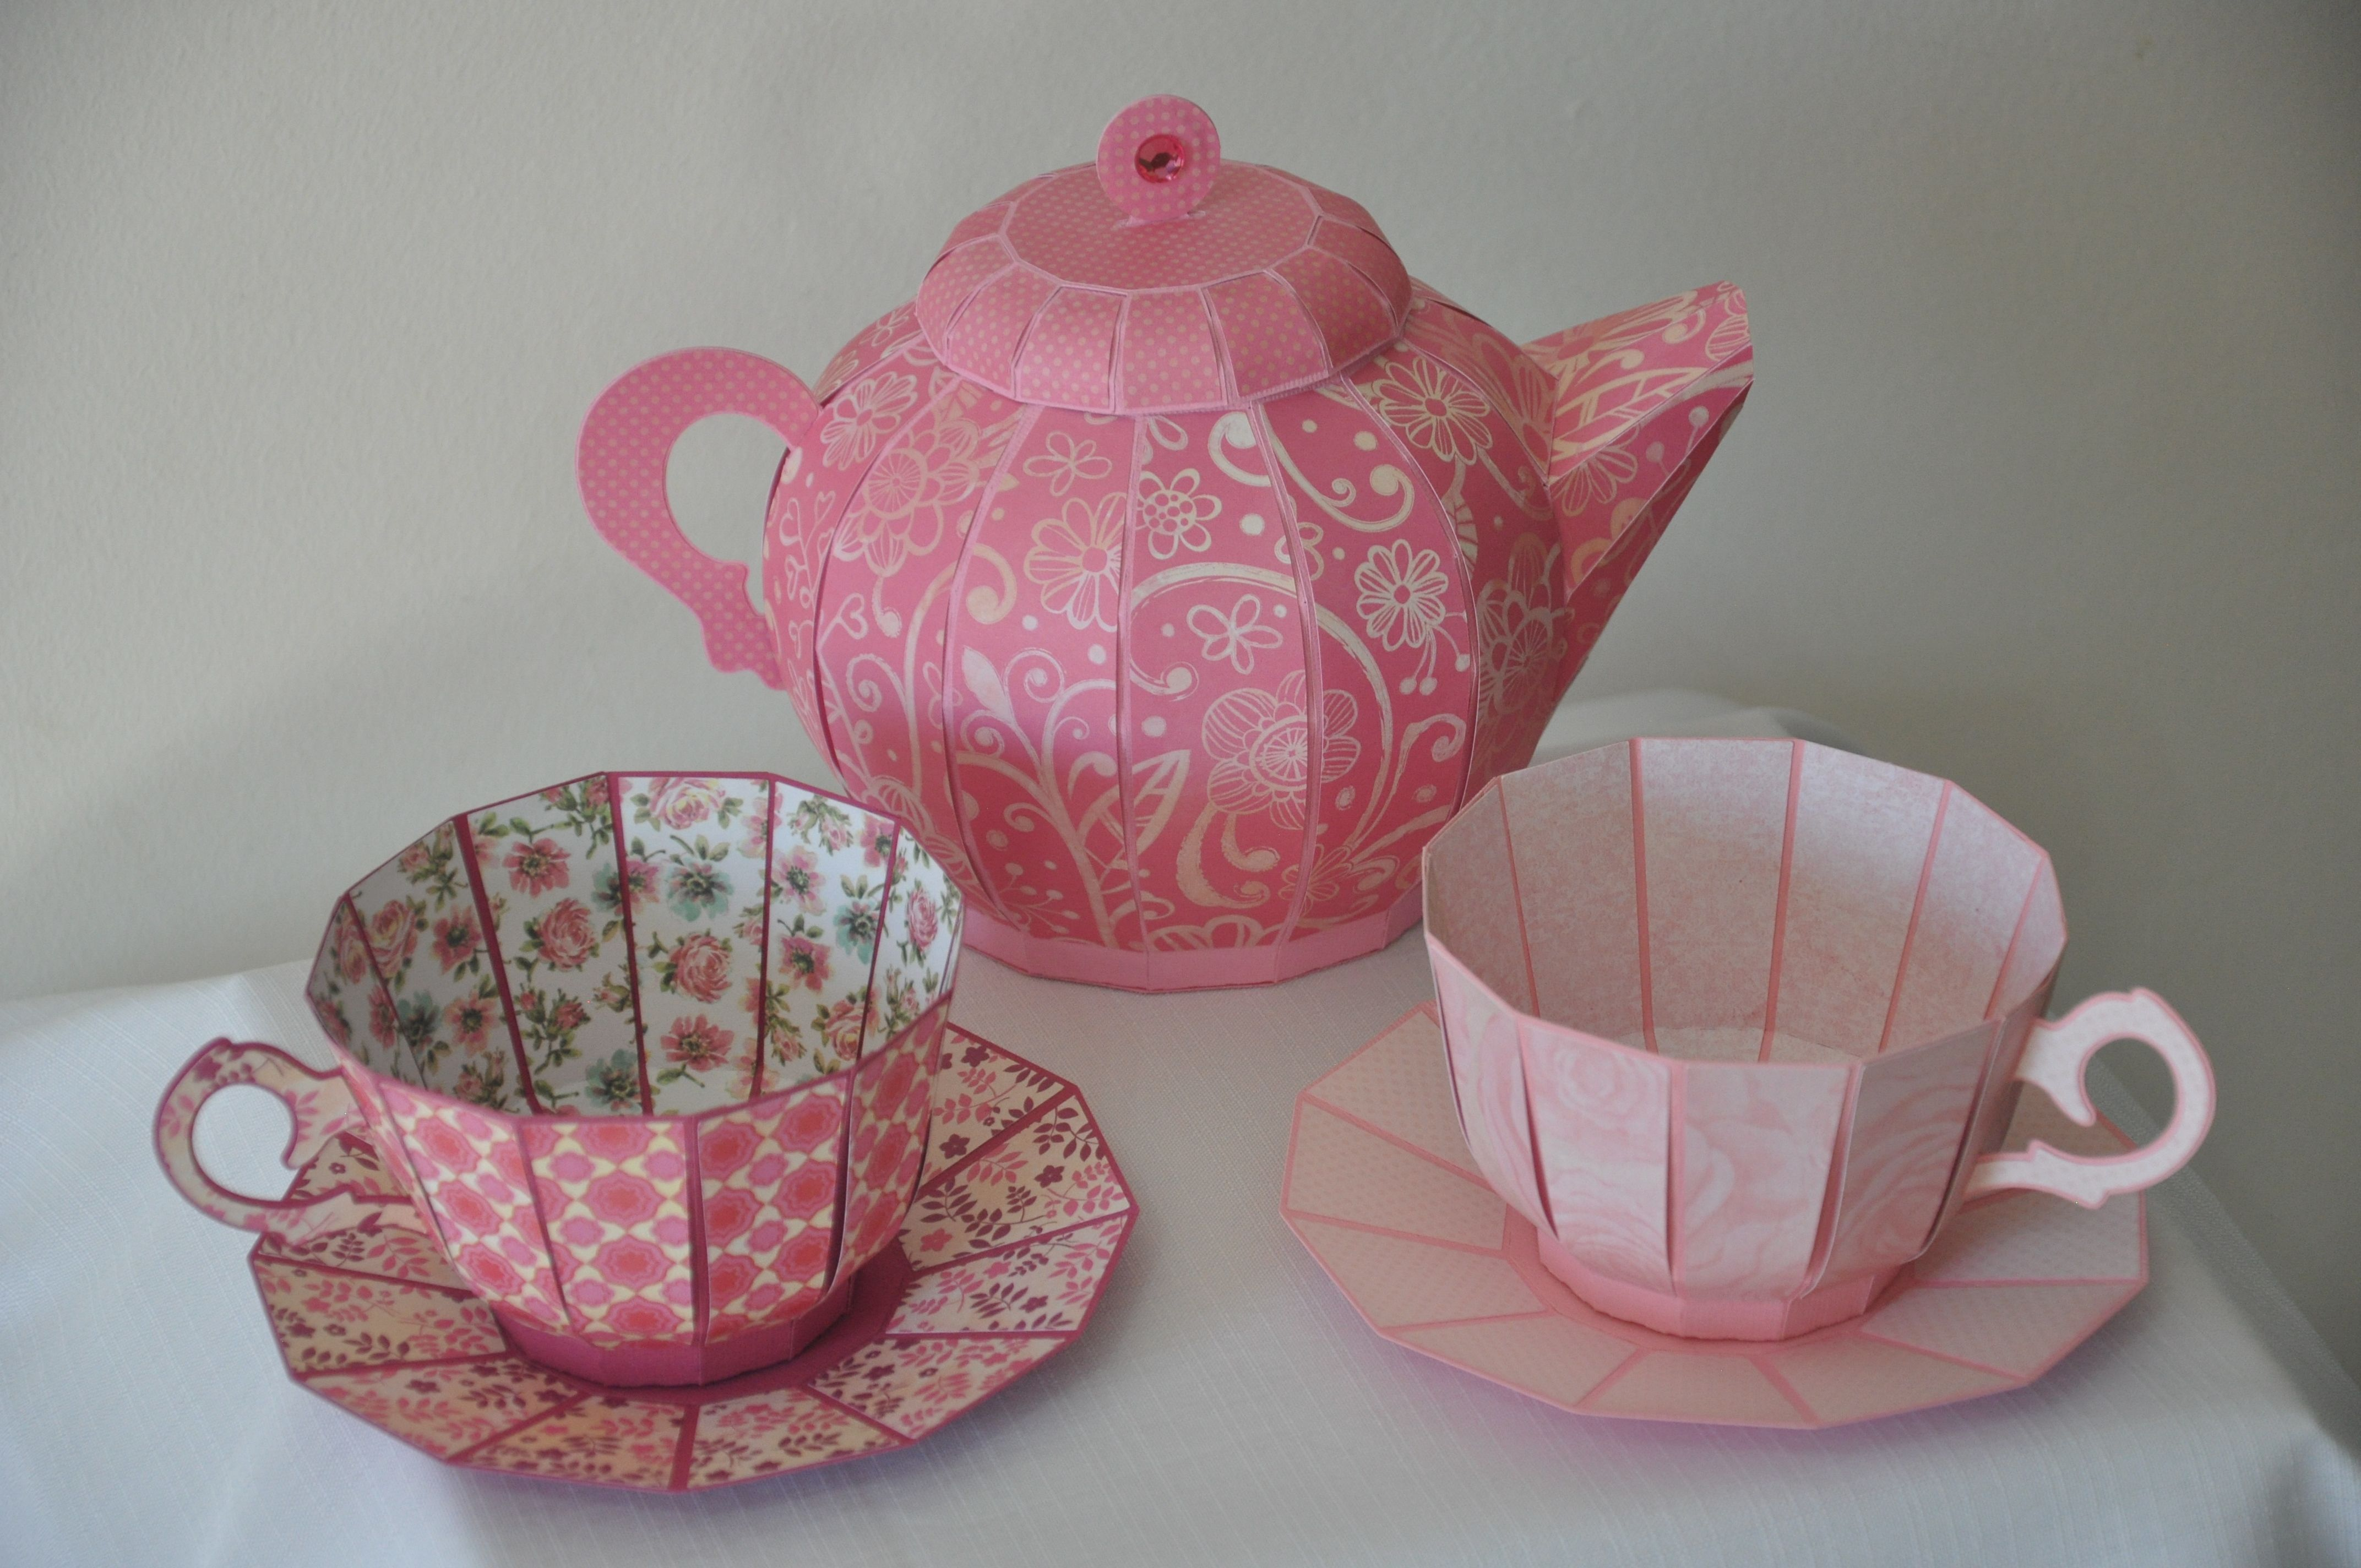 svgcuts Tea for two Teacup crafts, Cup crafts